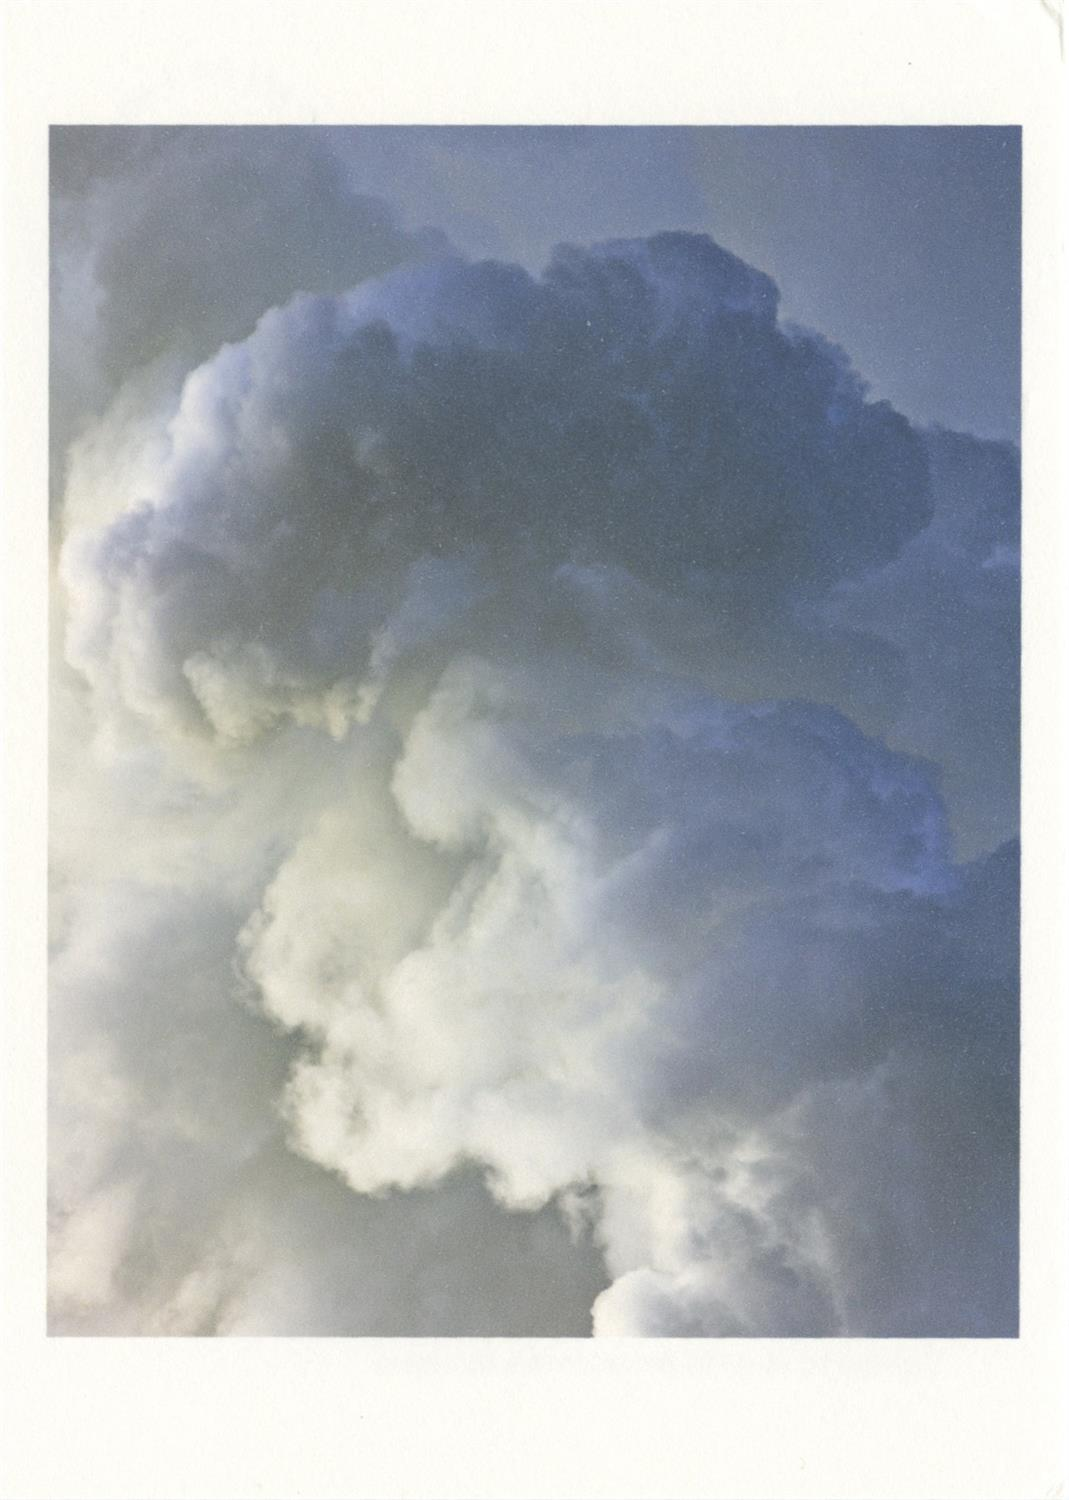 Andreas Gefeller, 046, from Clouds, 2020